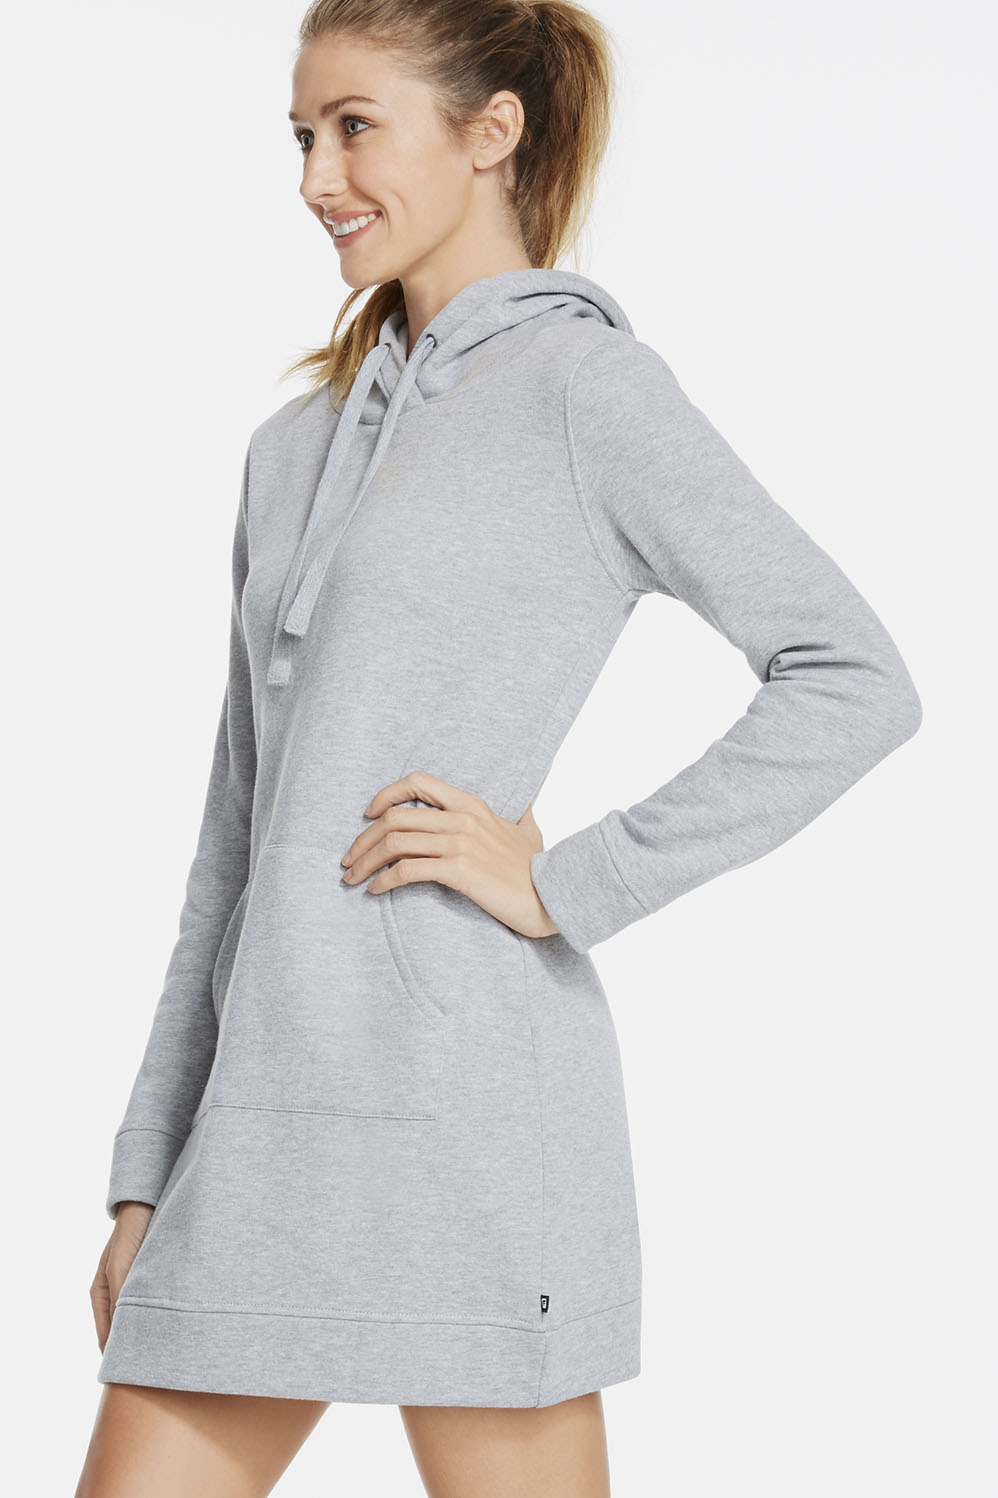 Yukon Dress - Heather Grey 4f46374f06